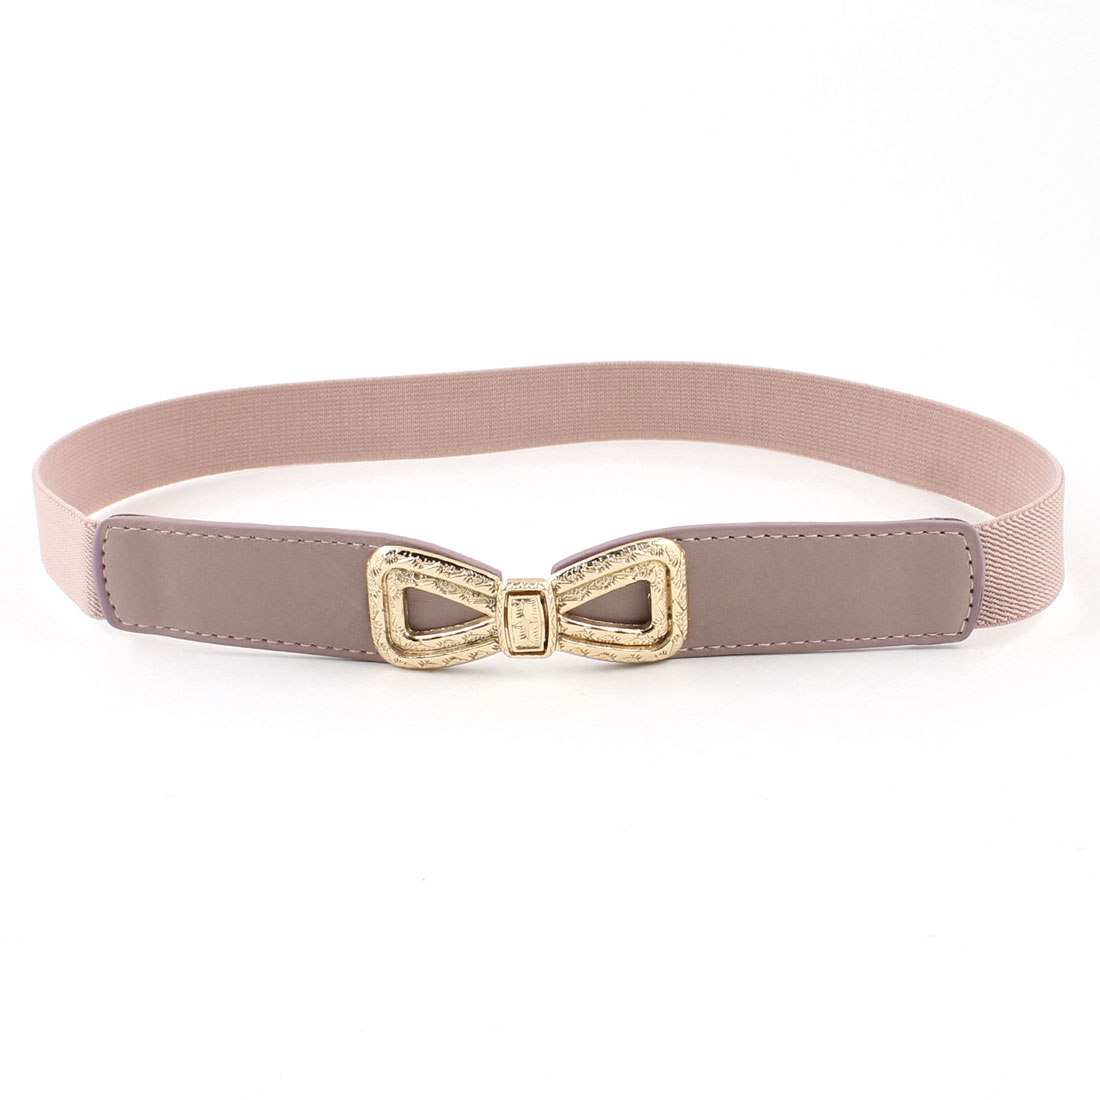 1inches Wide Faux Leather Elastic Band Slim Waist Belt Light Pink for Women